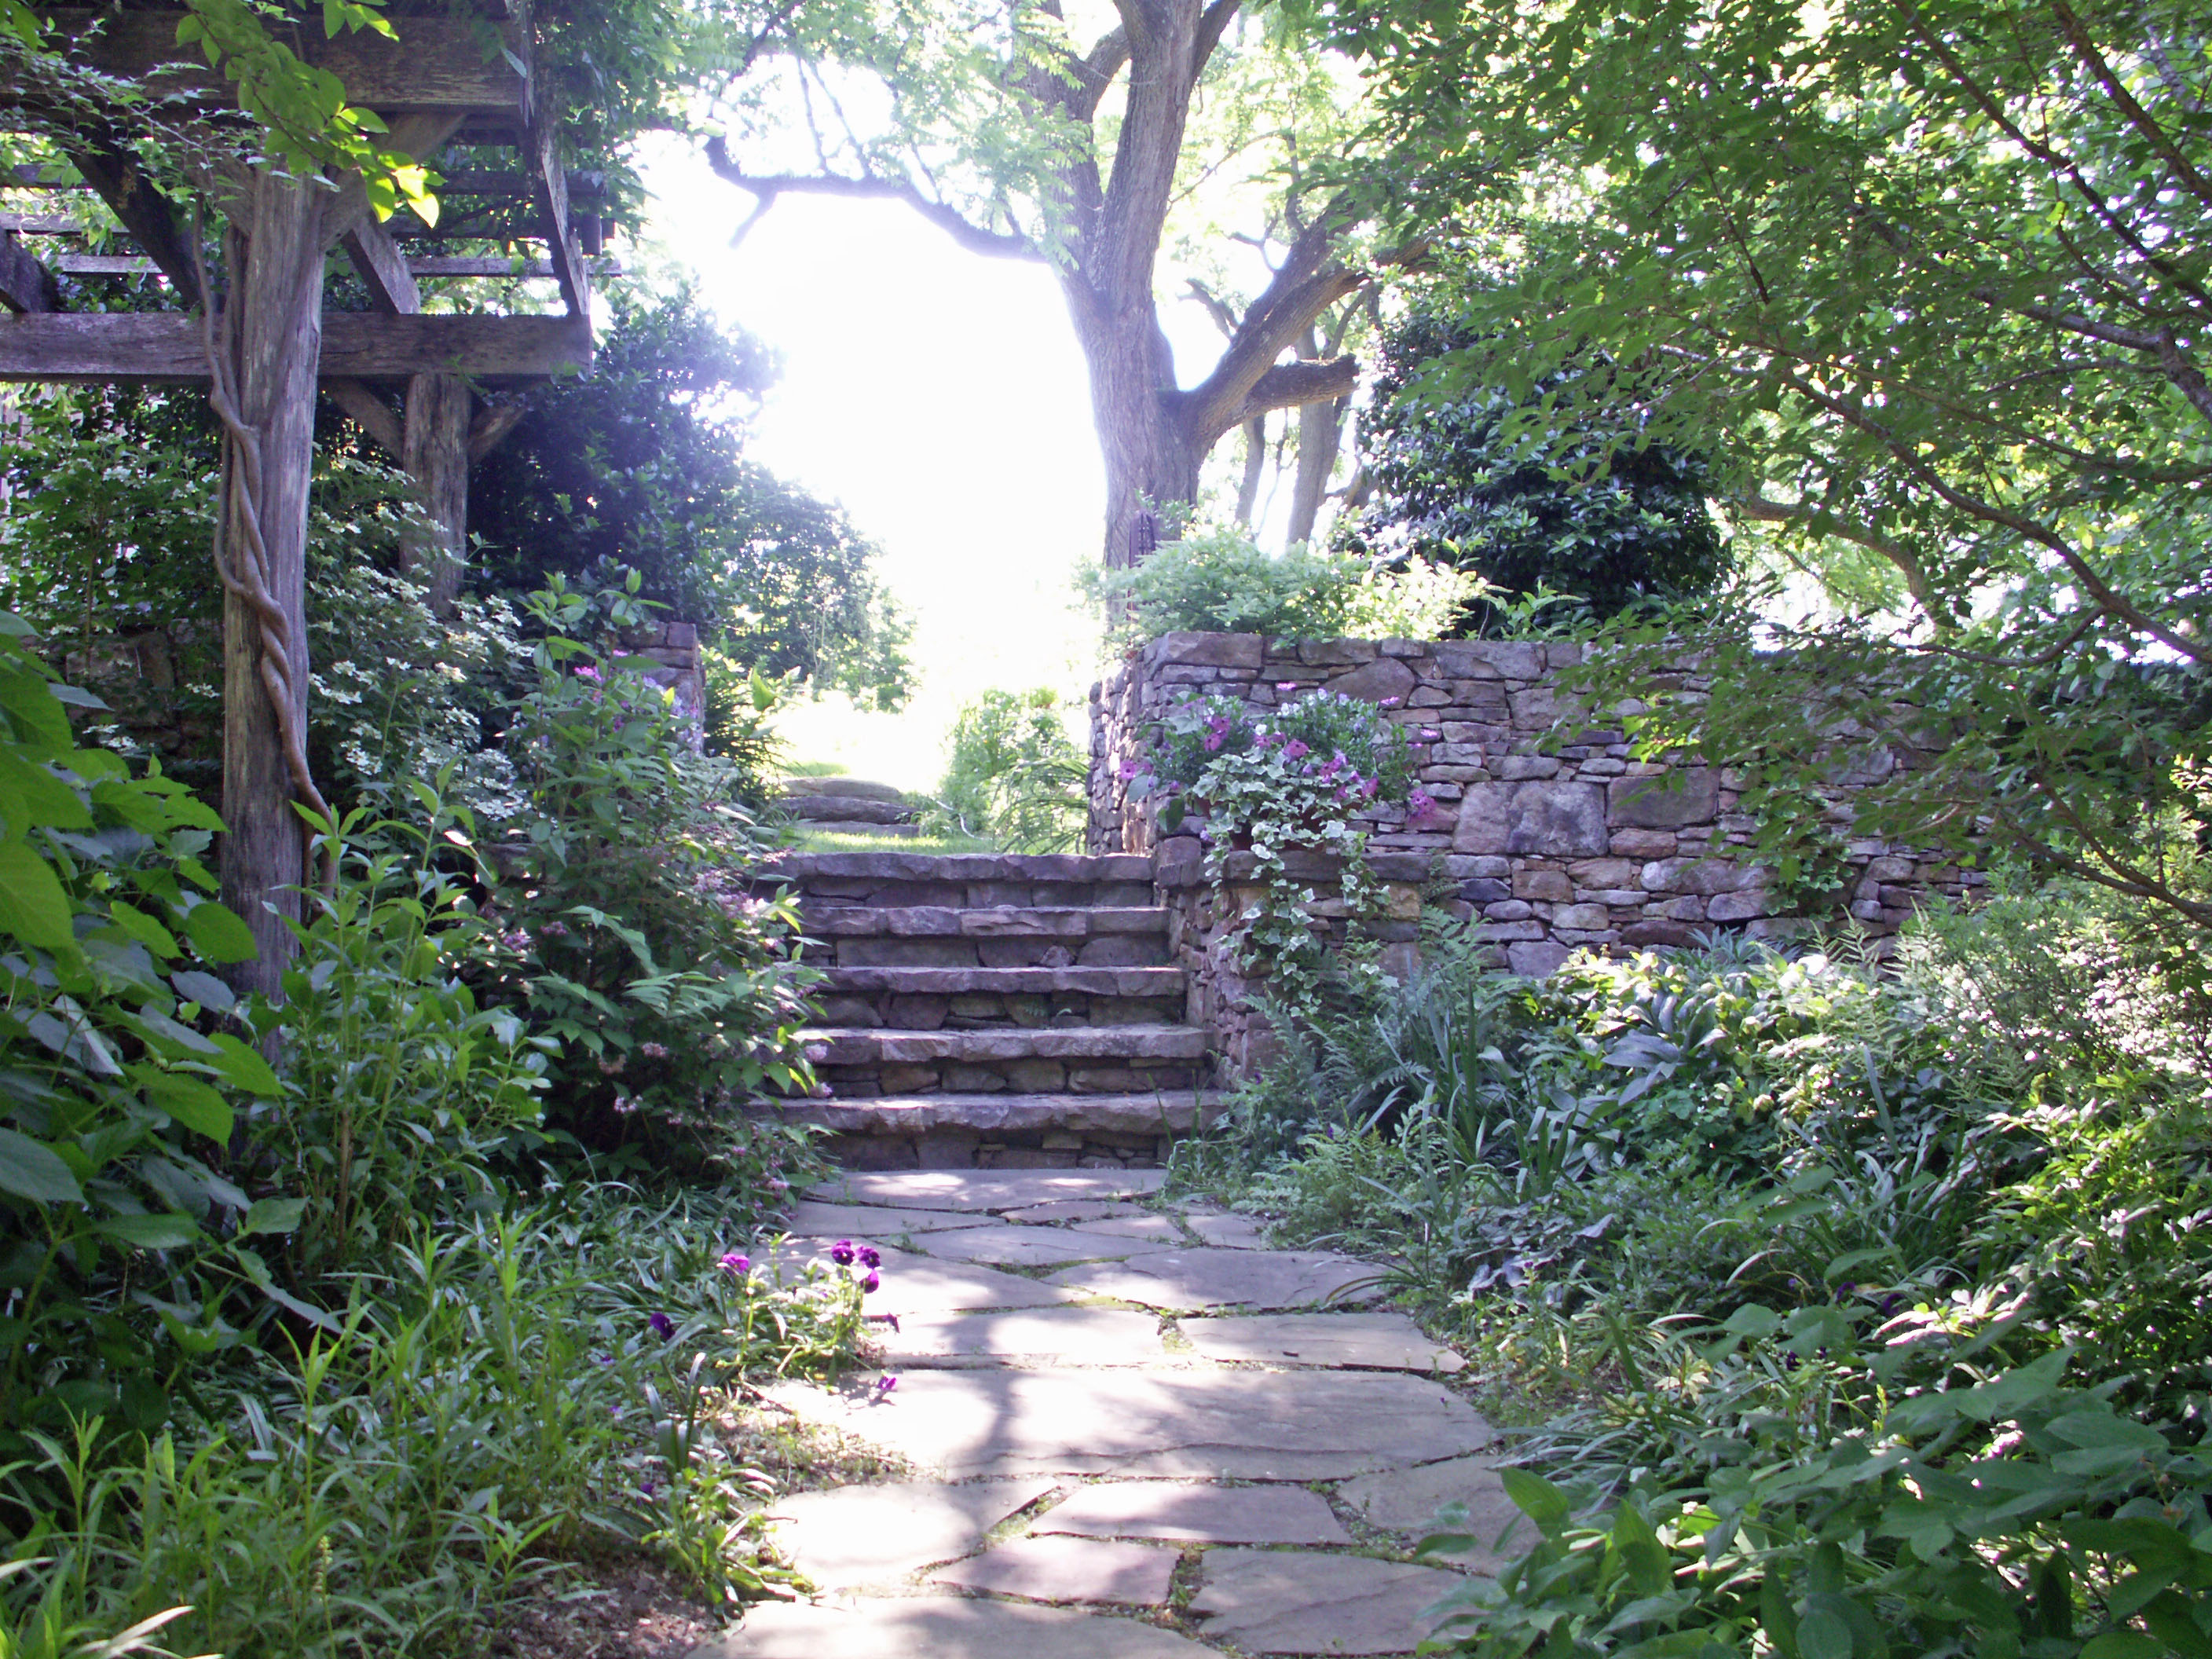 Natural stone walkway leading to stone stairs